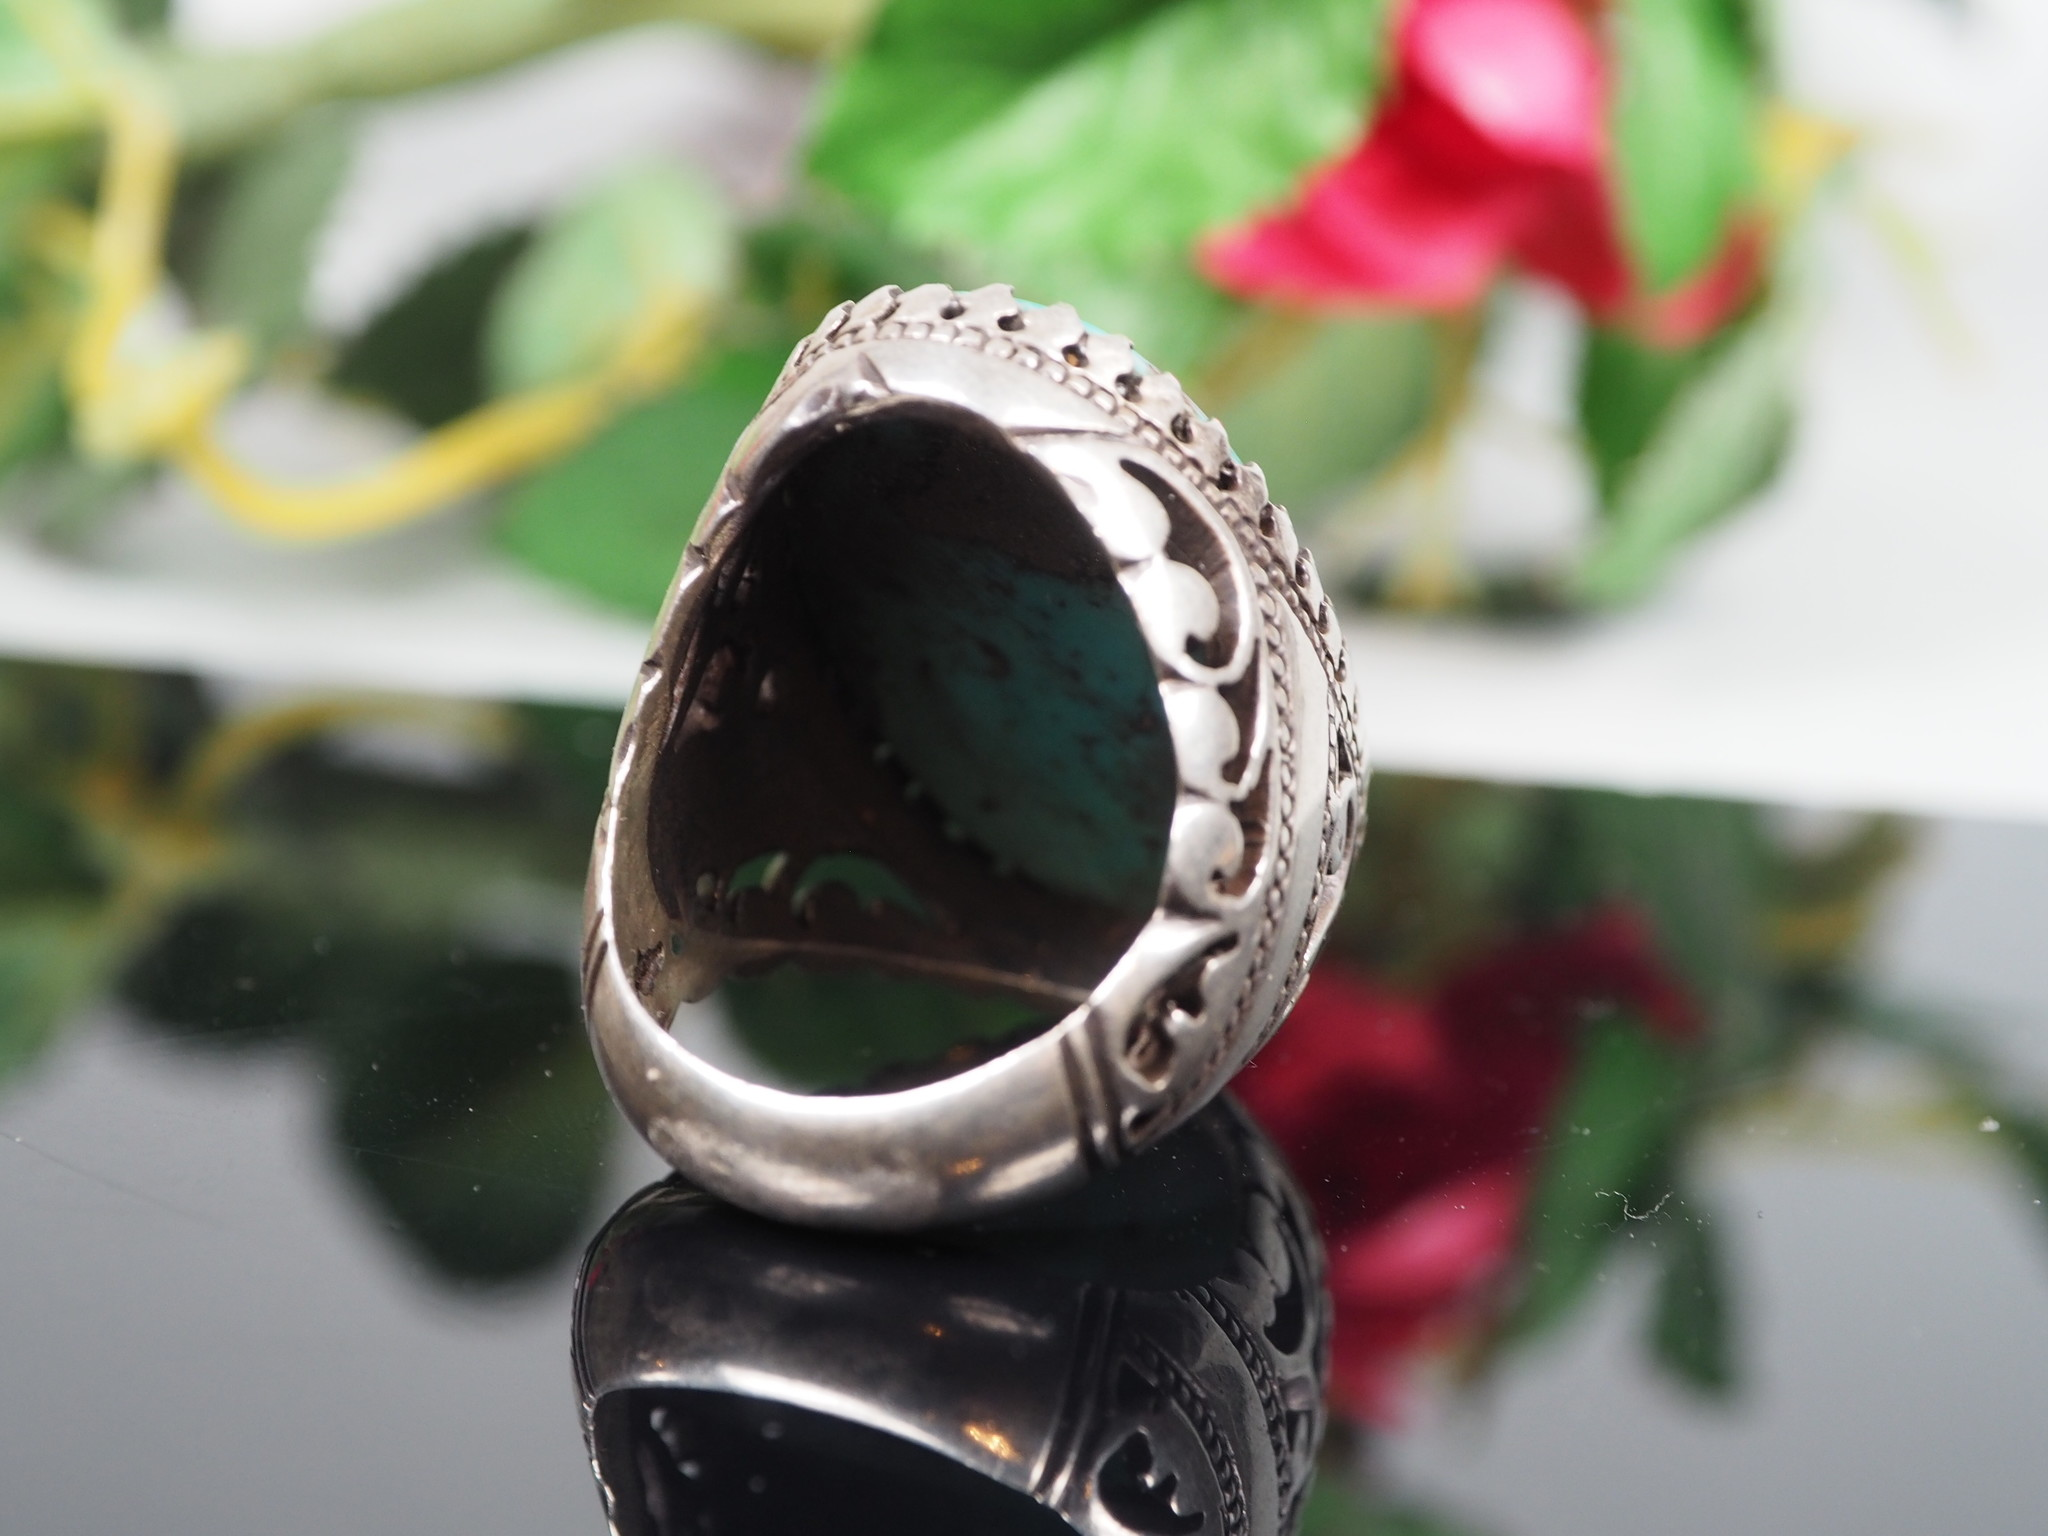 antique handmade Silver turquoise stone turkmen statement ring from Afghanistan No:WL21/5